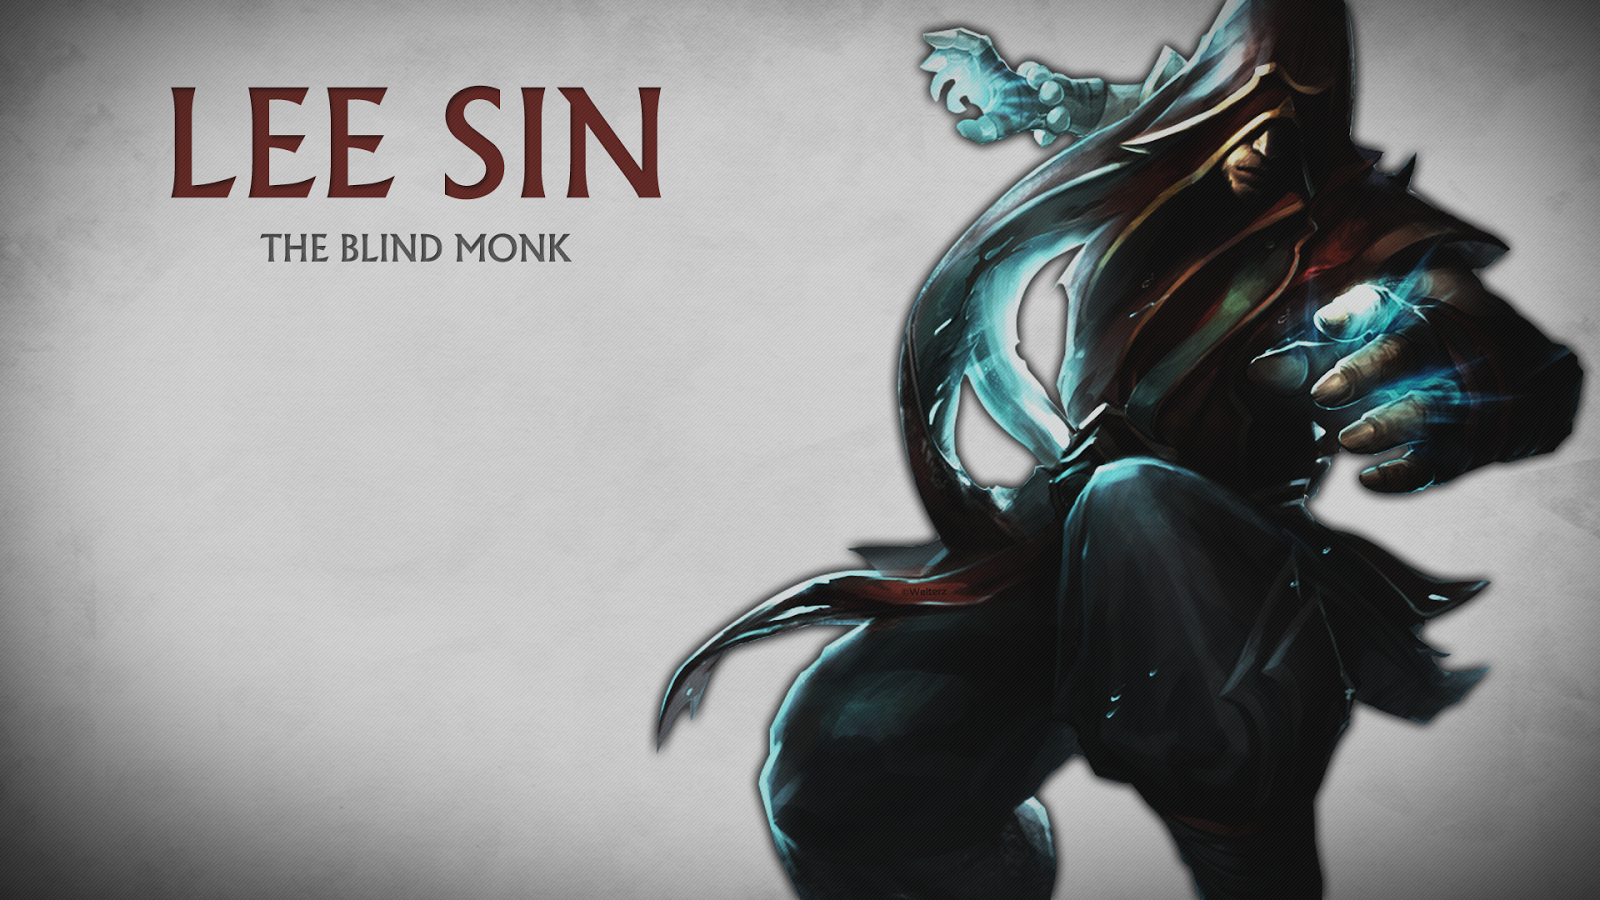 lee sin wallpaper - photo #19